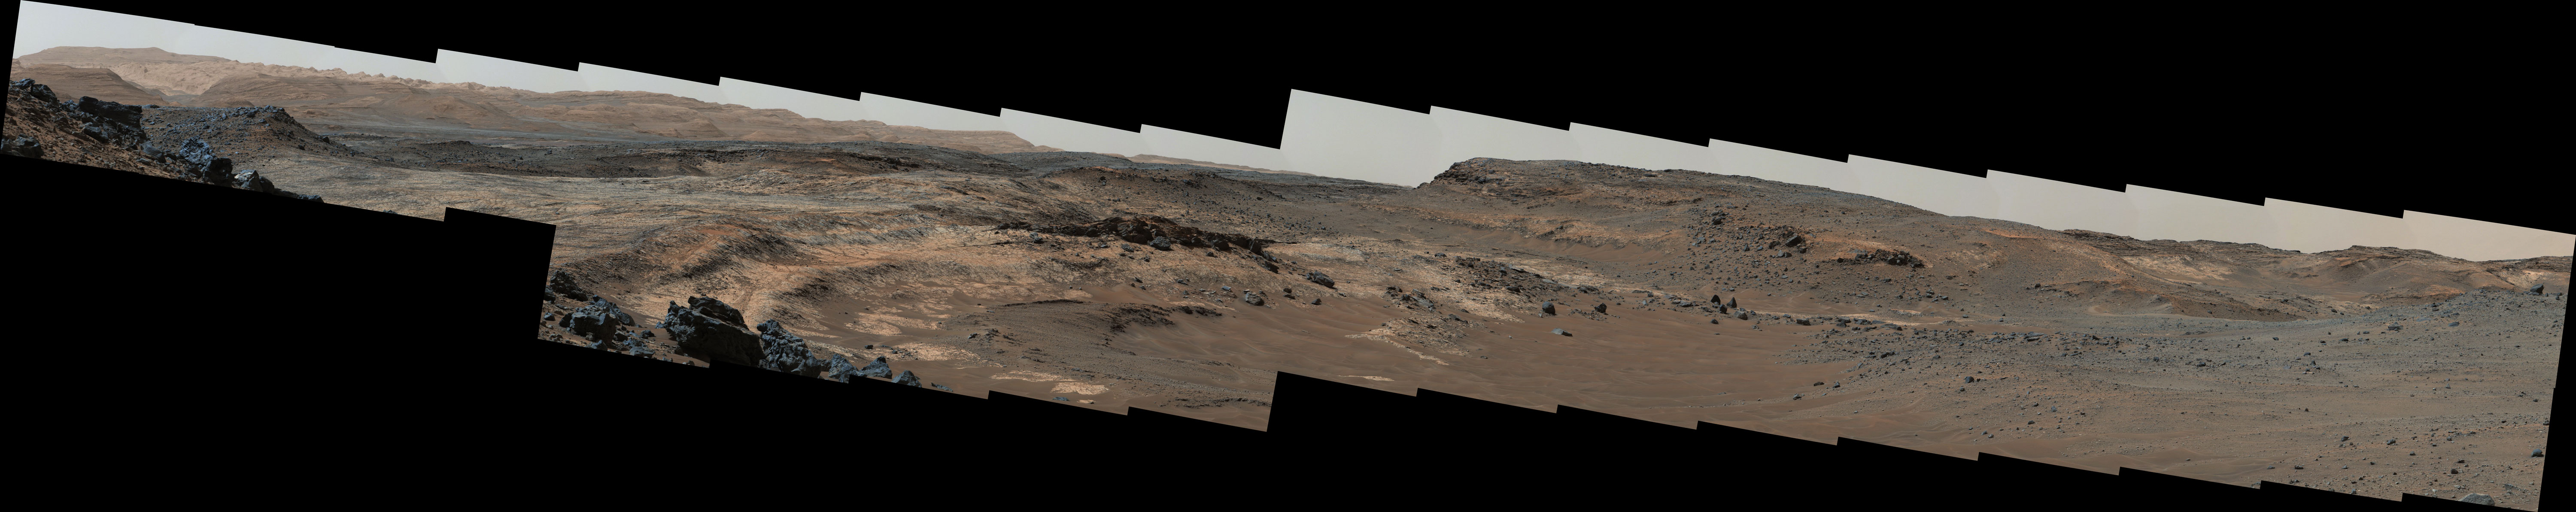 A sweeping panorama combining 33 telephoto images into one Martian vista presents details of several types of terrain visible on Mount Sharp from a location along the route of NASA's Curiosity Mars rover. The component images were taken by the rover's Mast Camera on April 10, 2015.